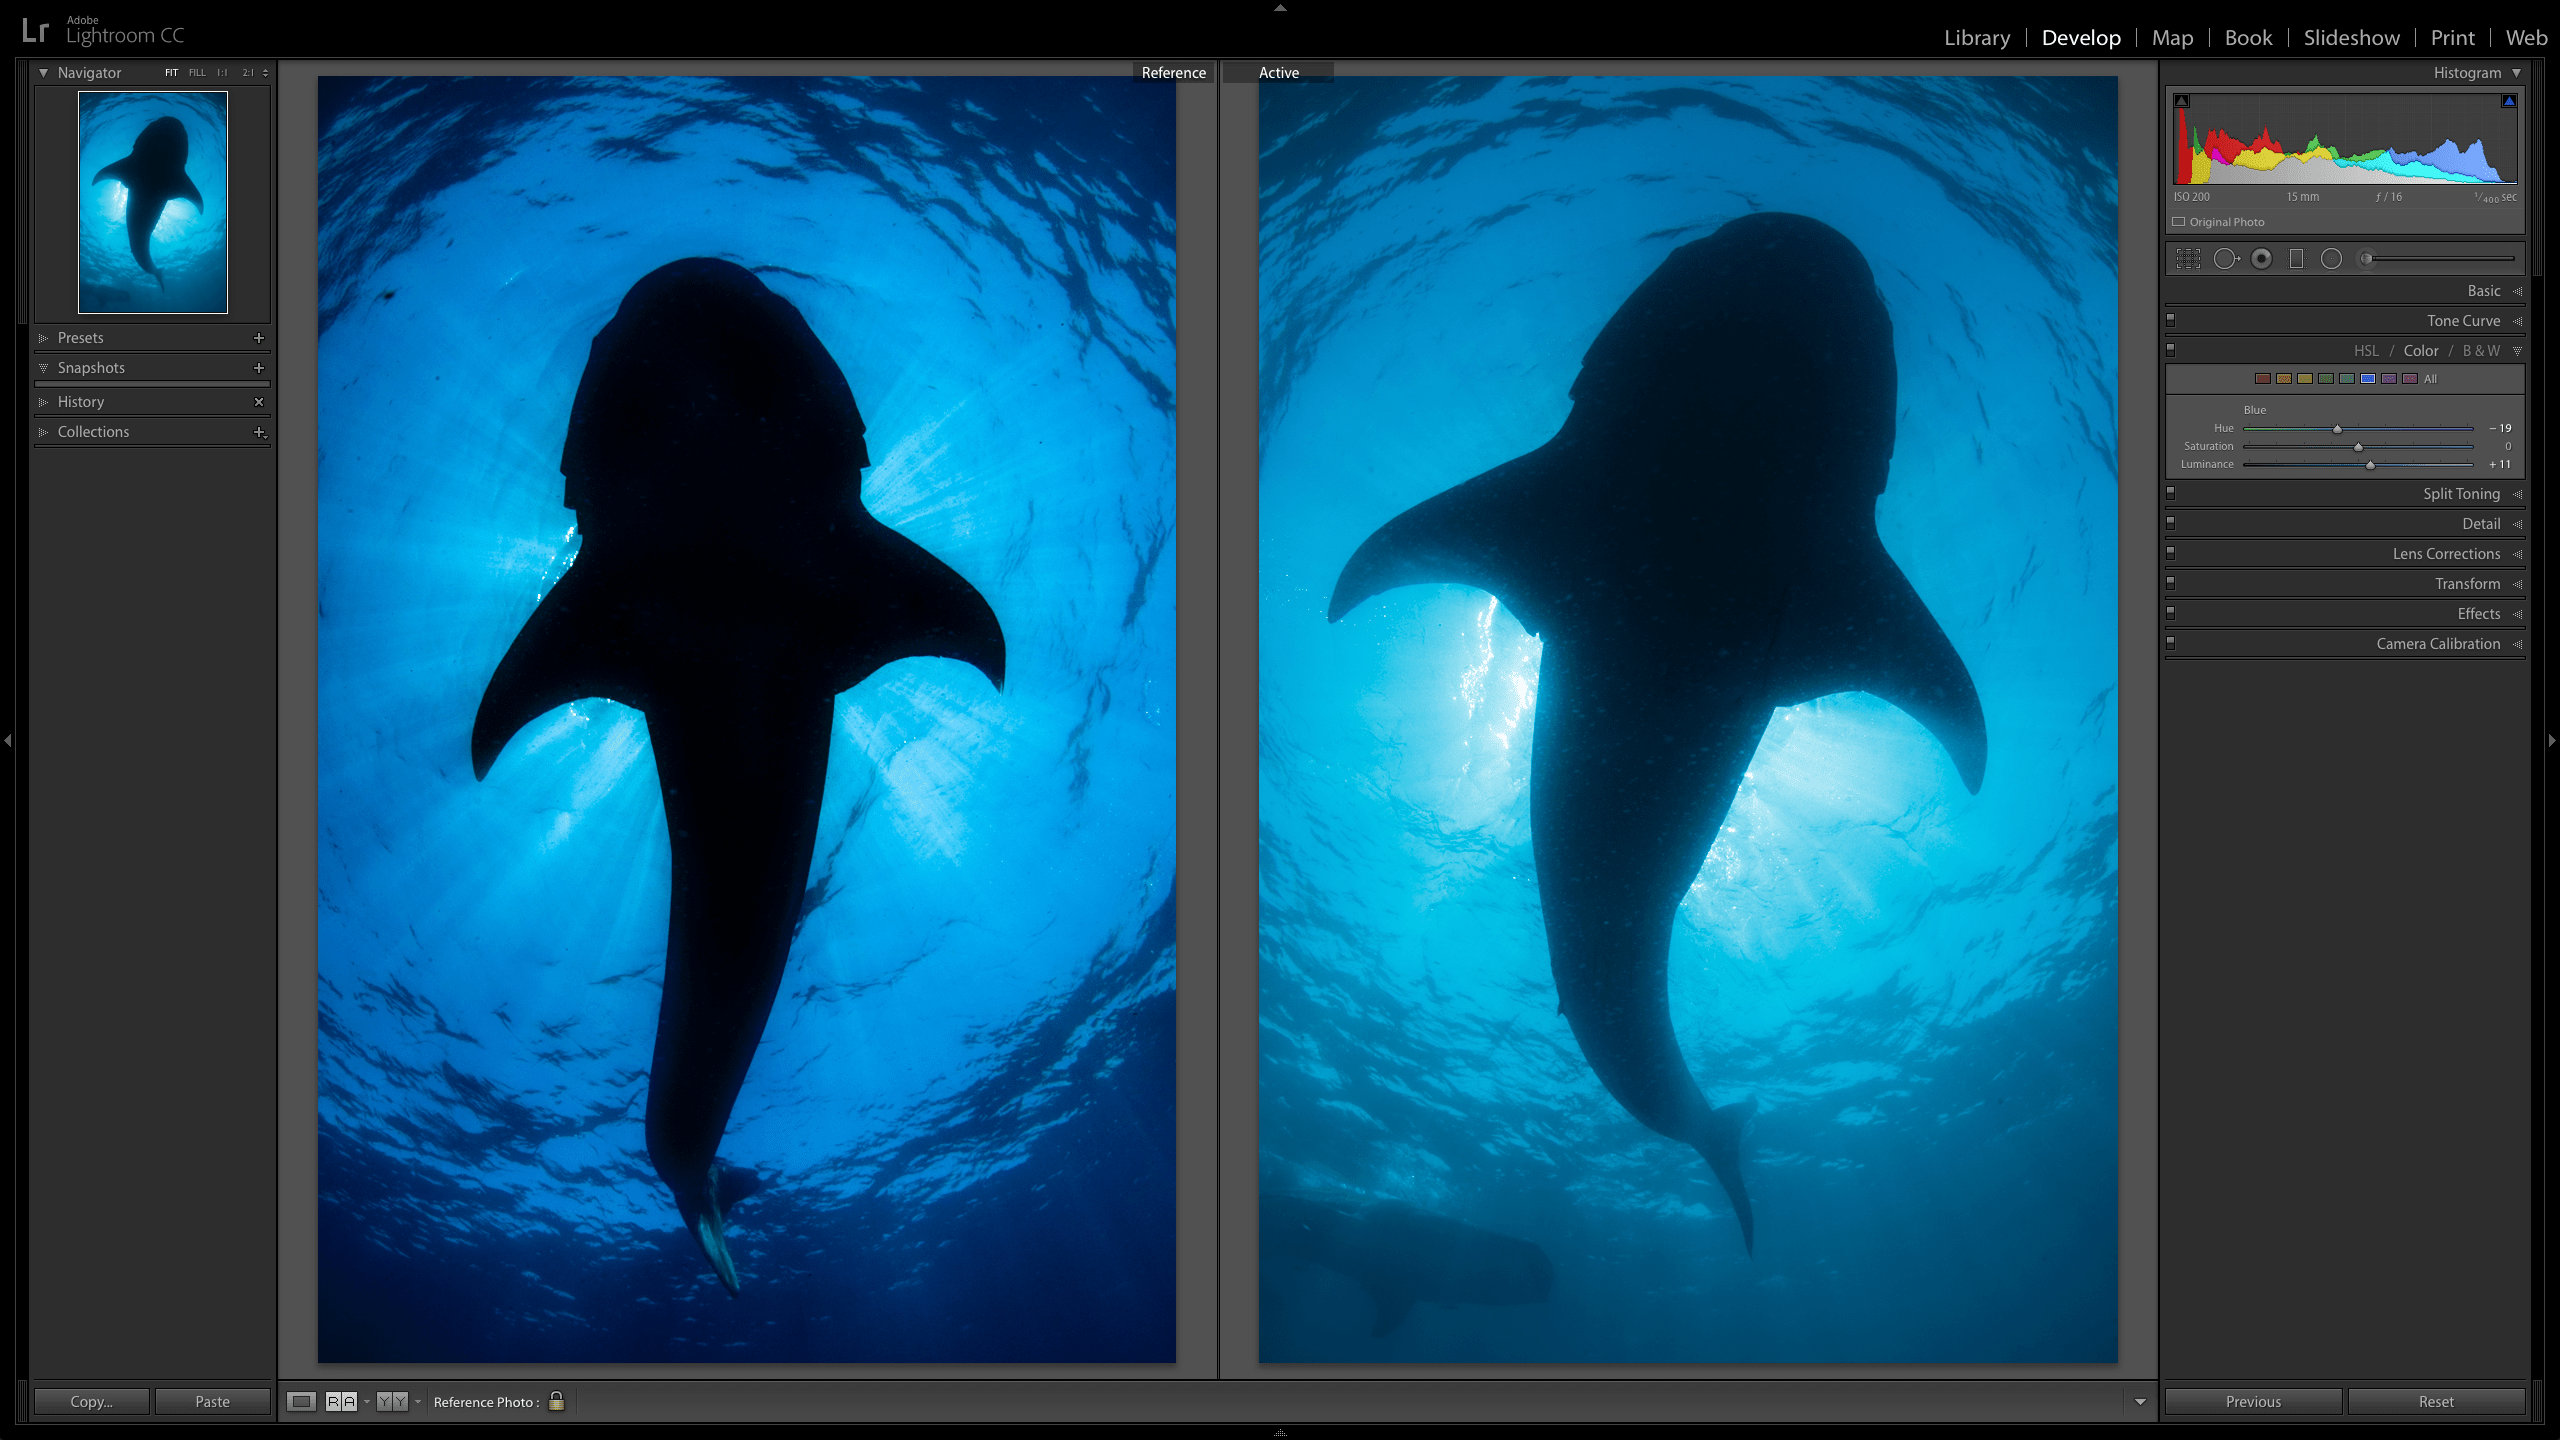 Lightroom CC's new Reference View